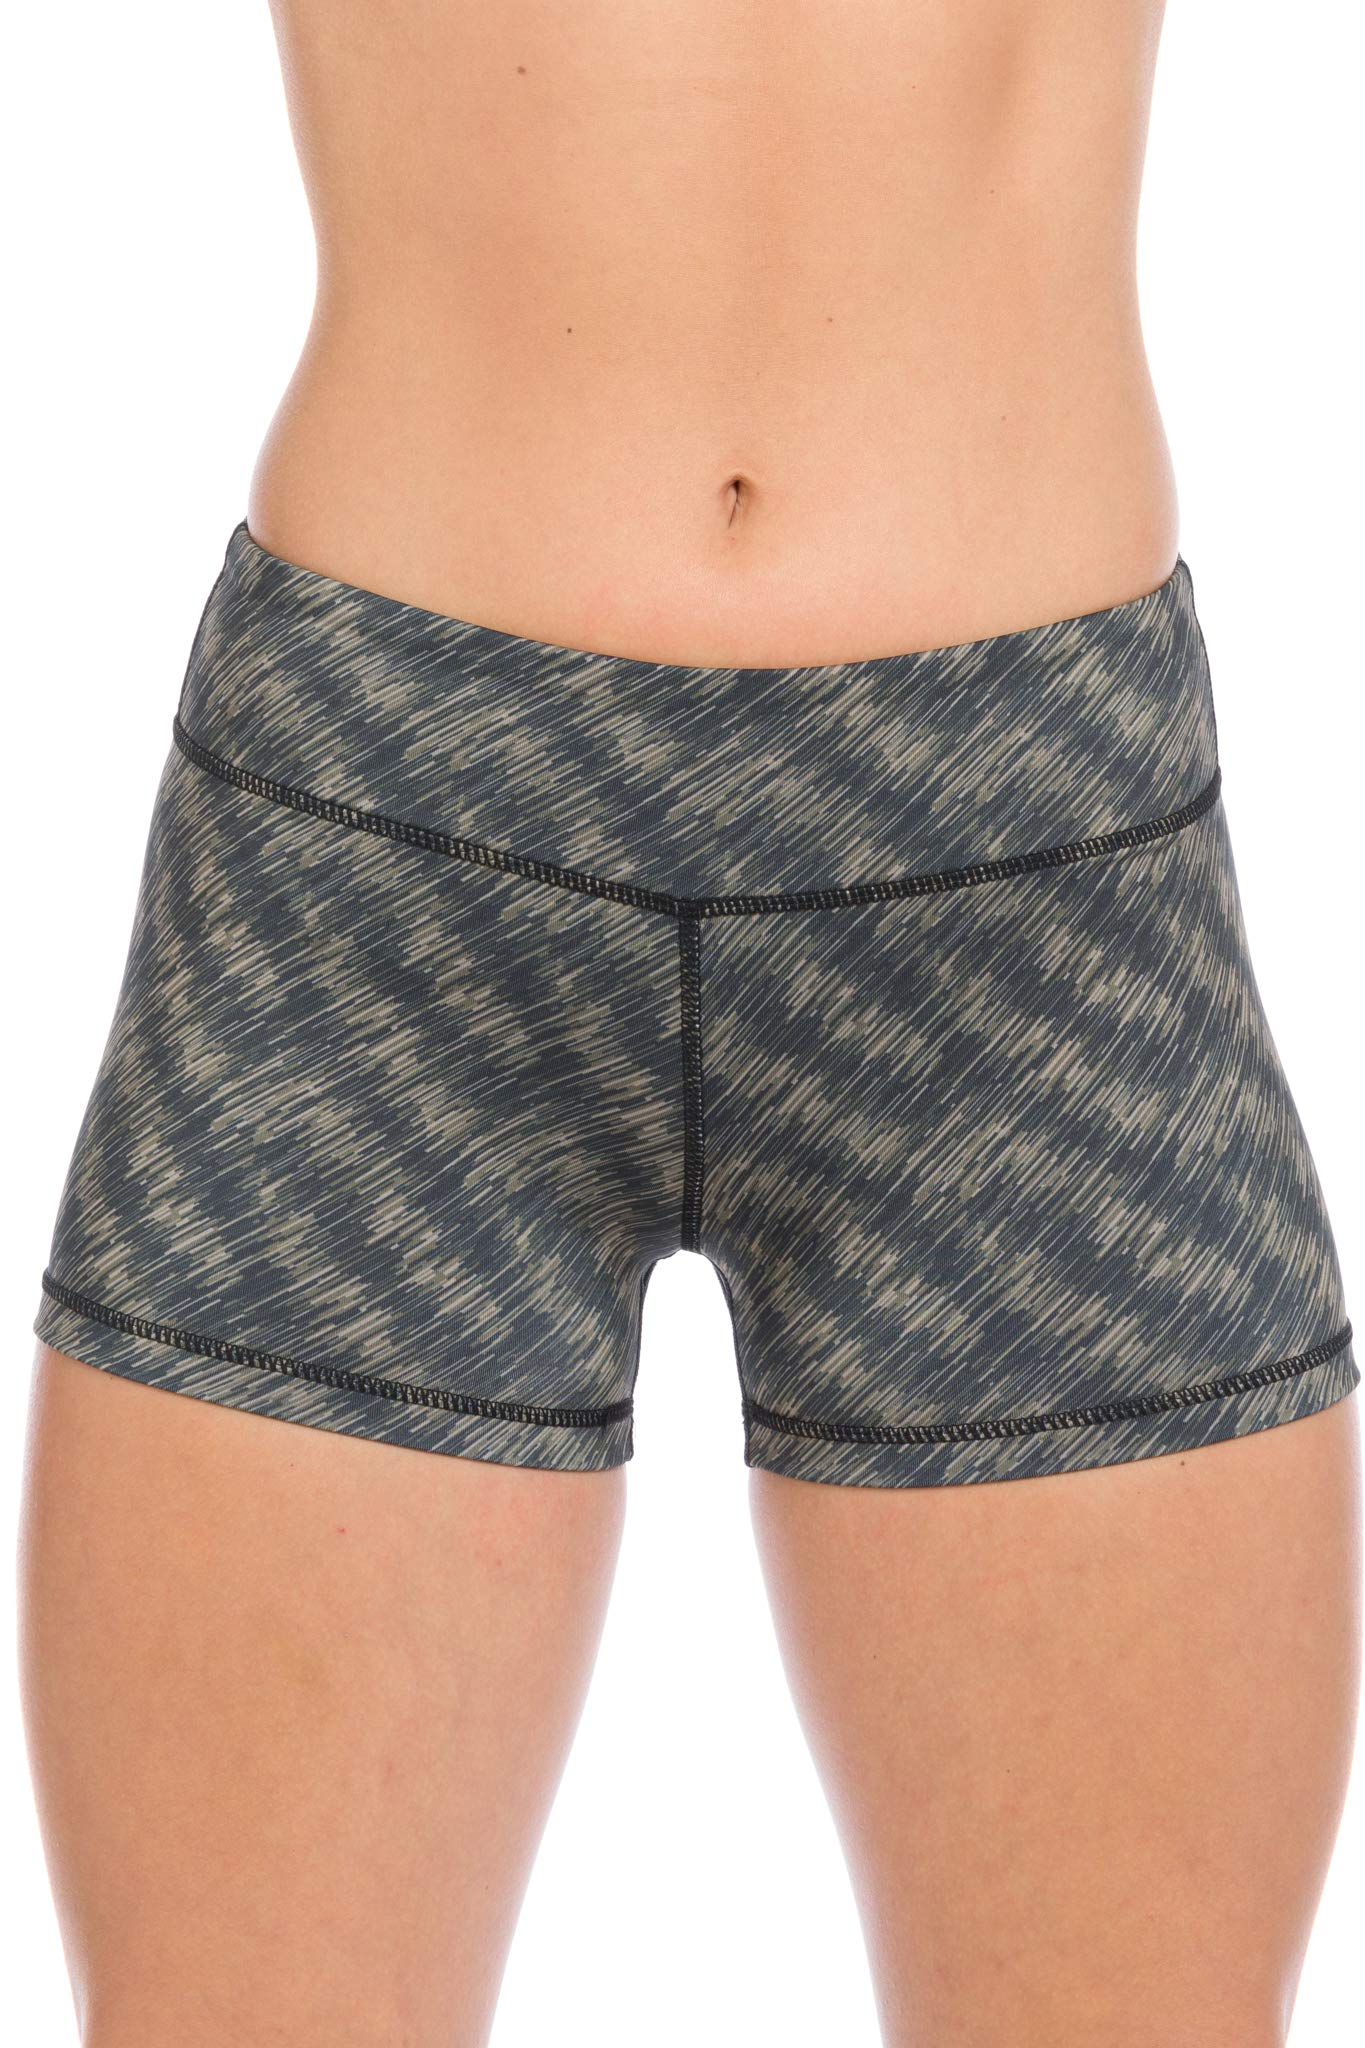 I AM BECOMING IABMFG 3'' Stretch Yoga Booty Shorts - Fitness, WOD, Running (XS, Olive) by I AM BECOMING